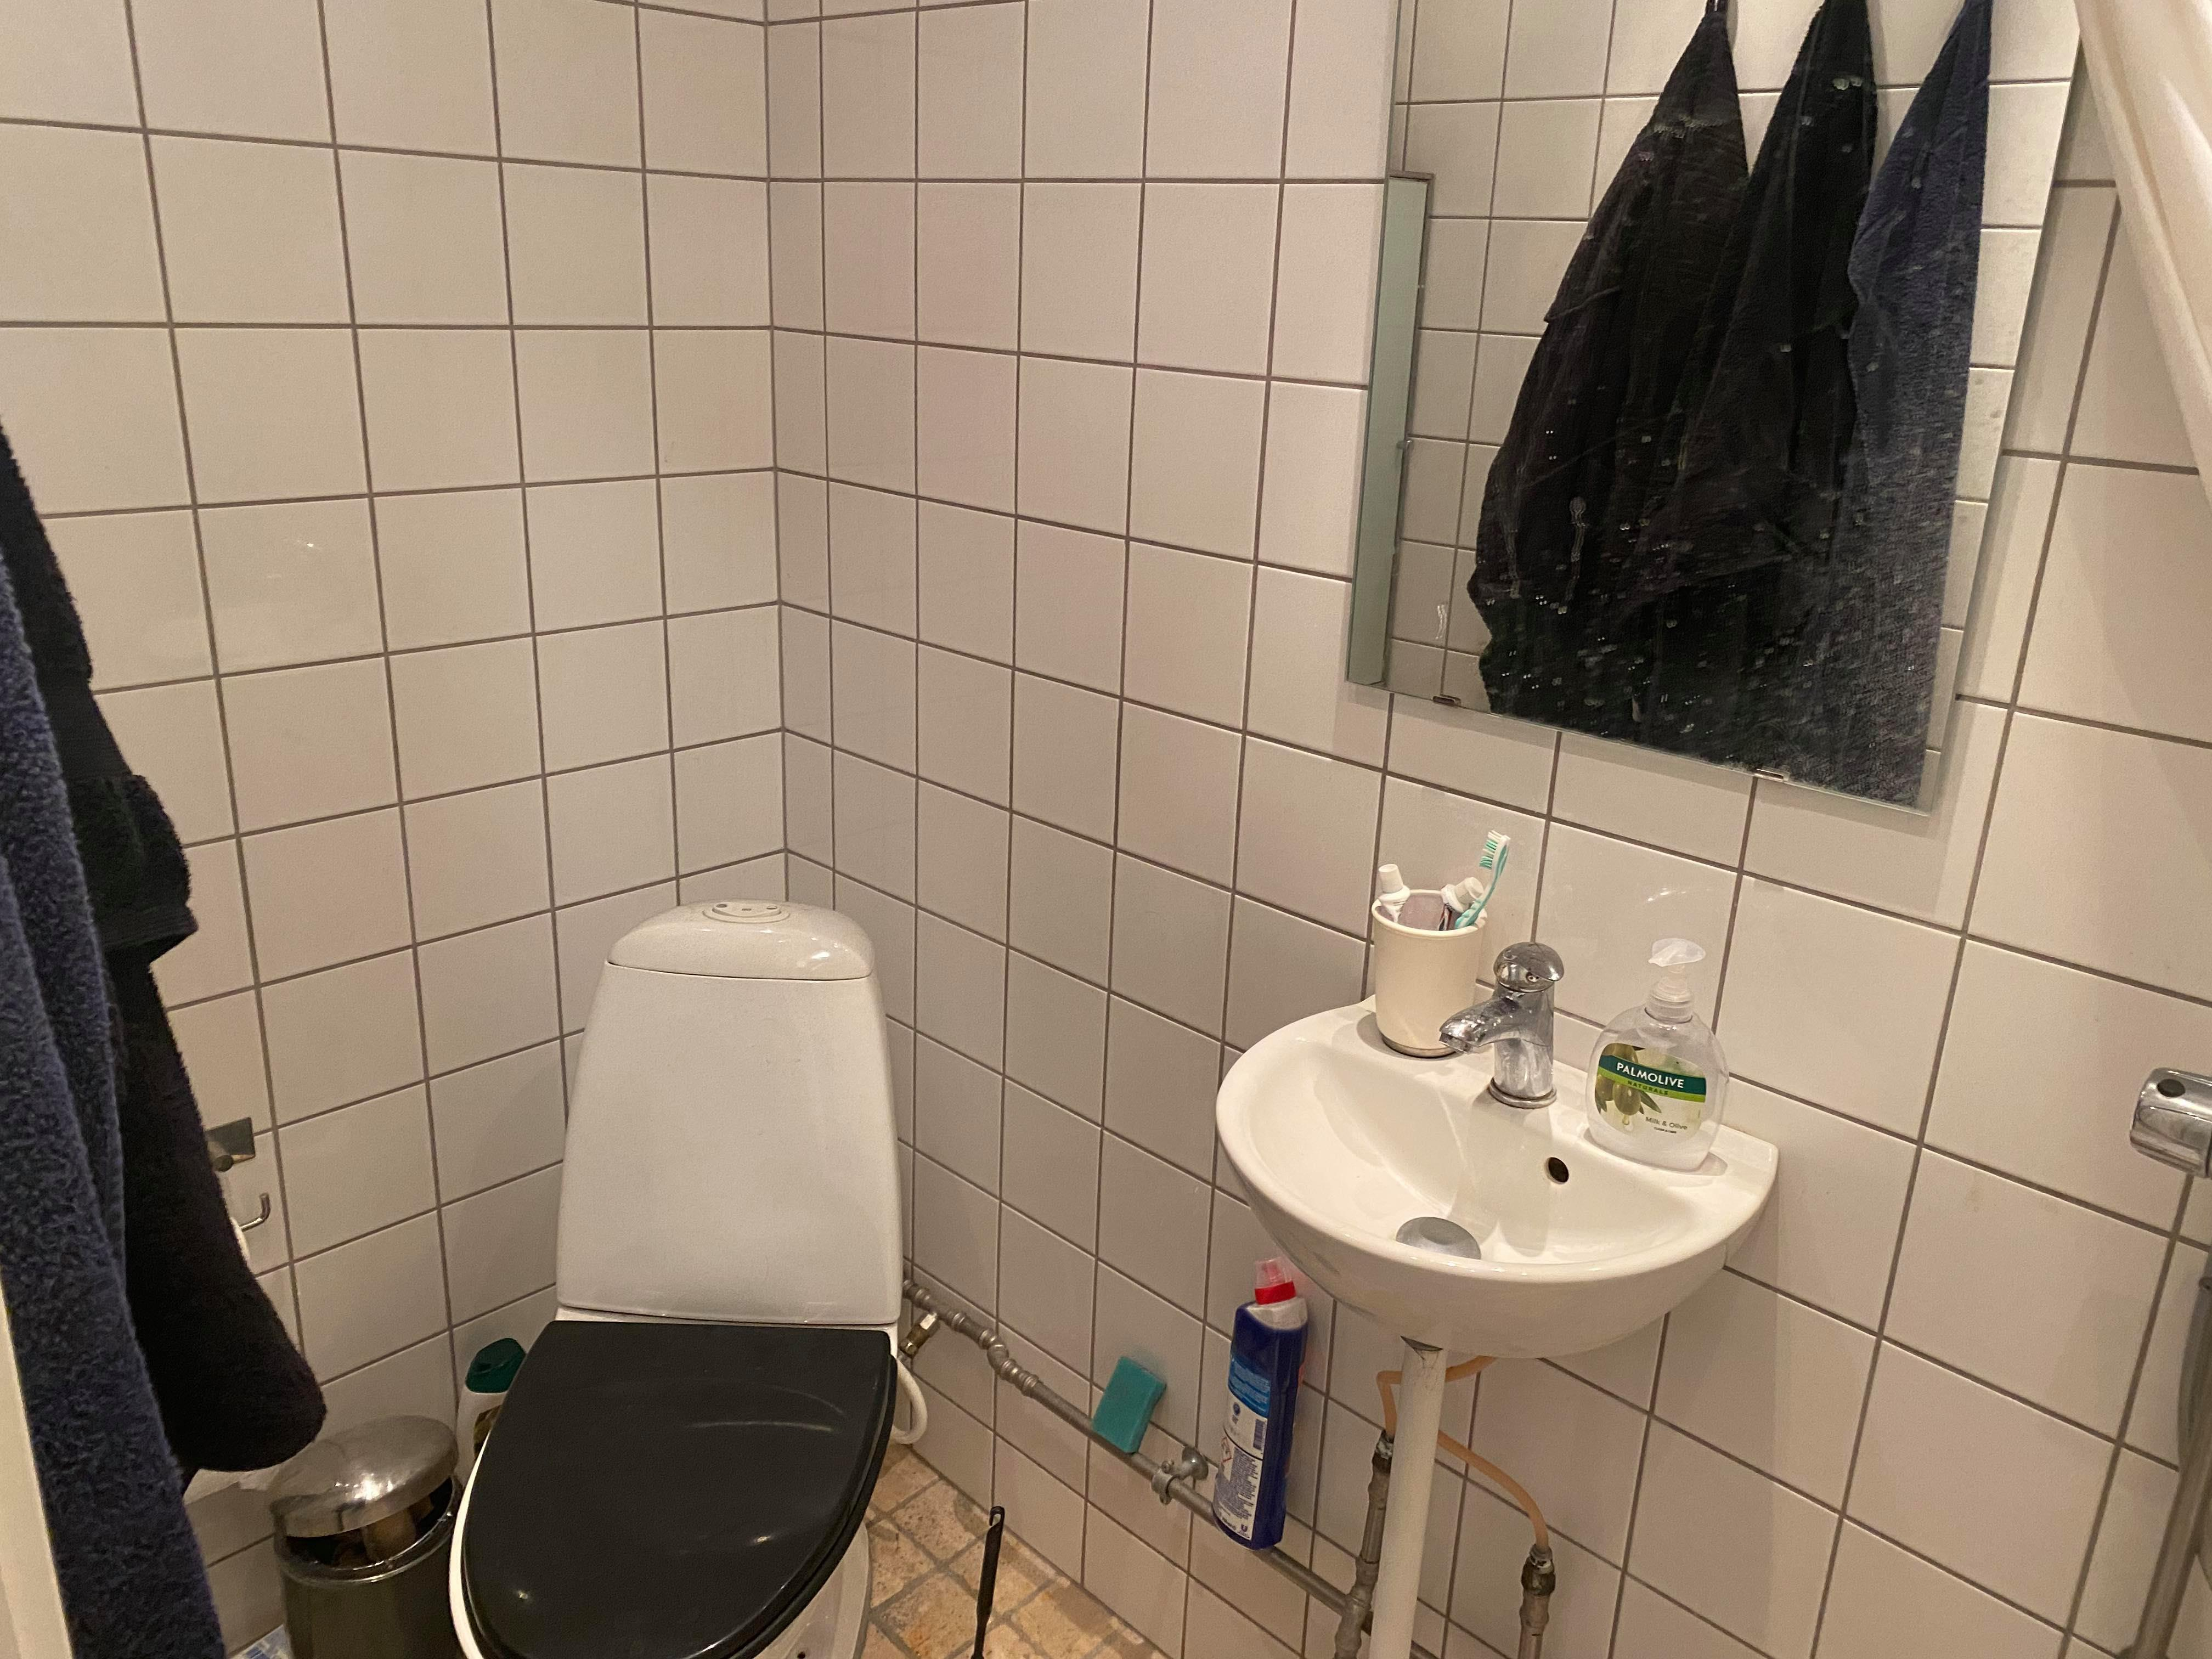 I am looking for a roomie for a 59 m² apartment in Valby